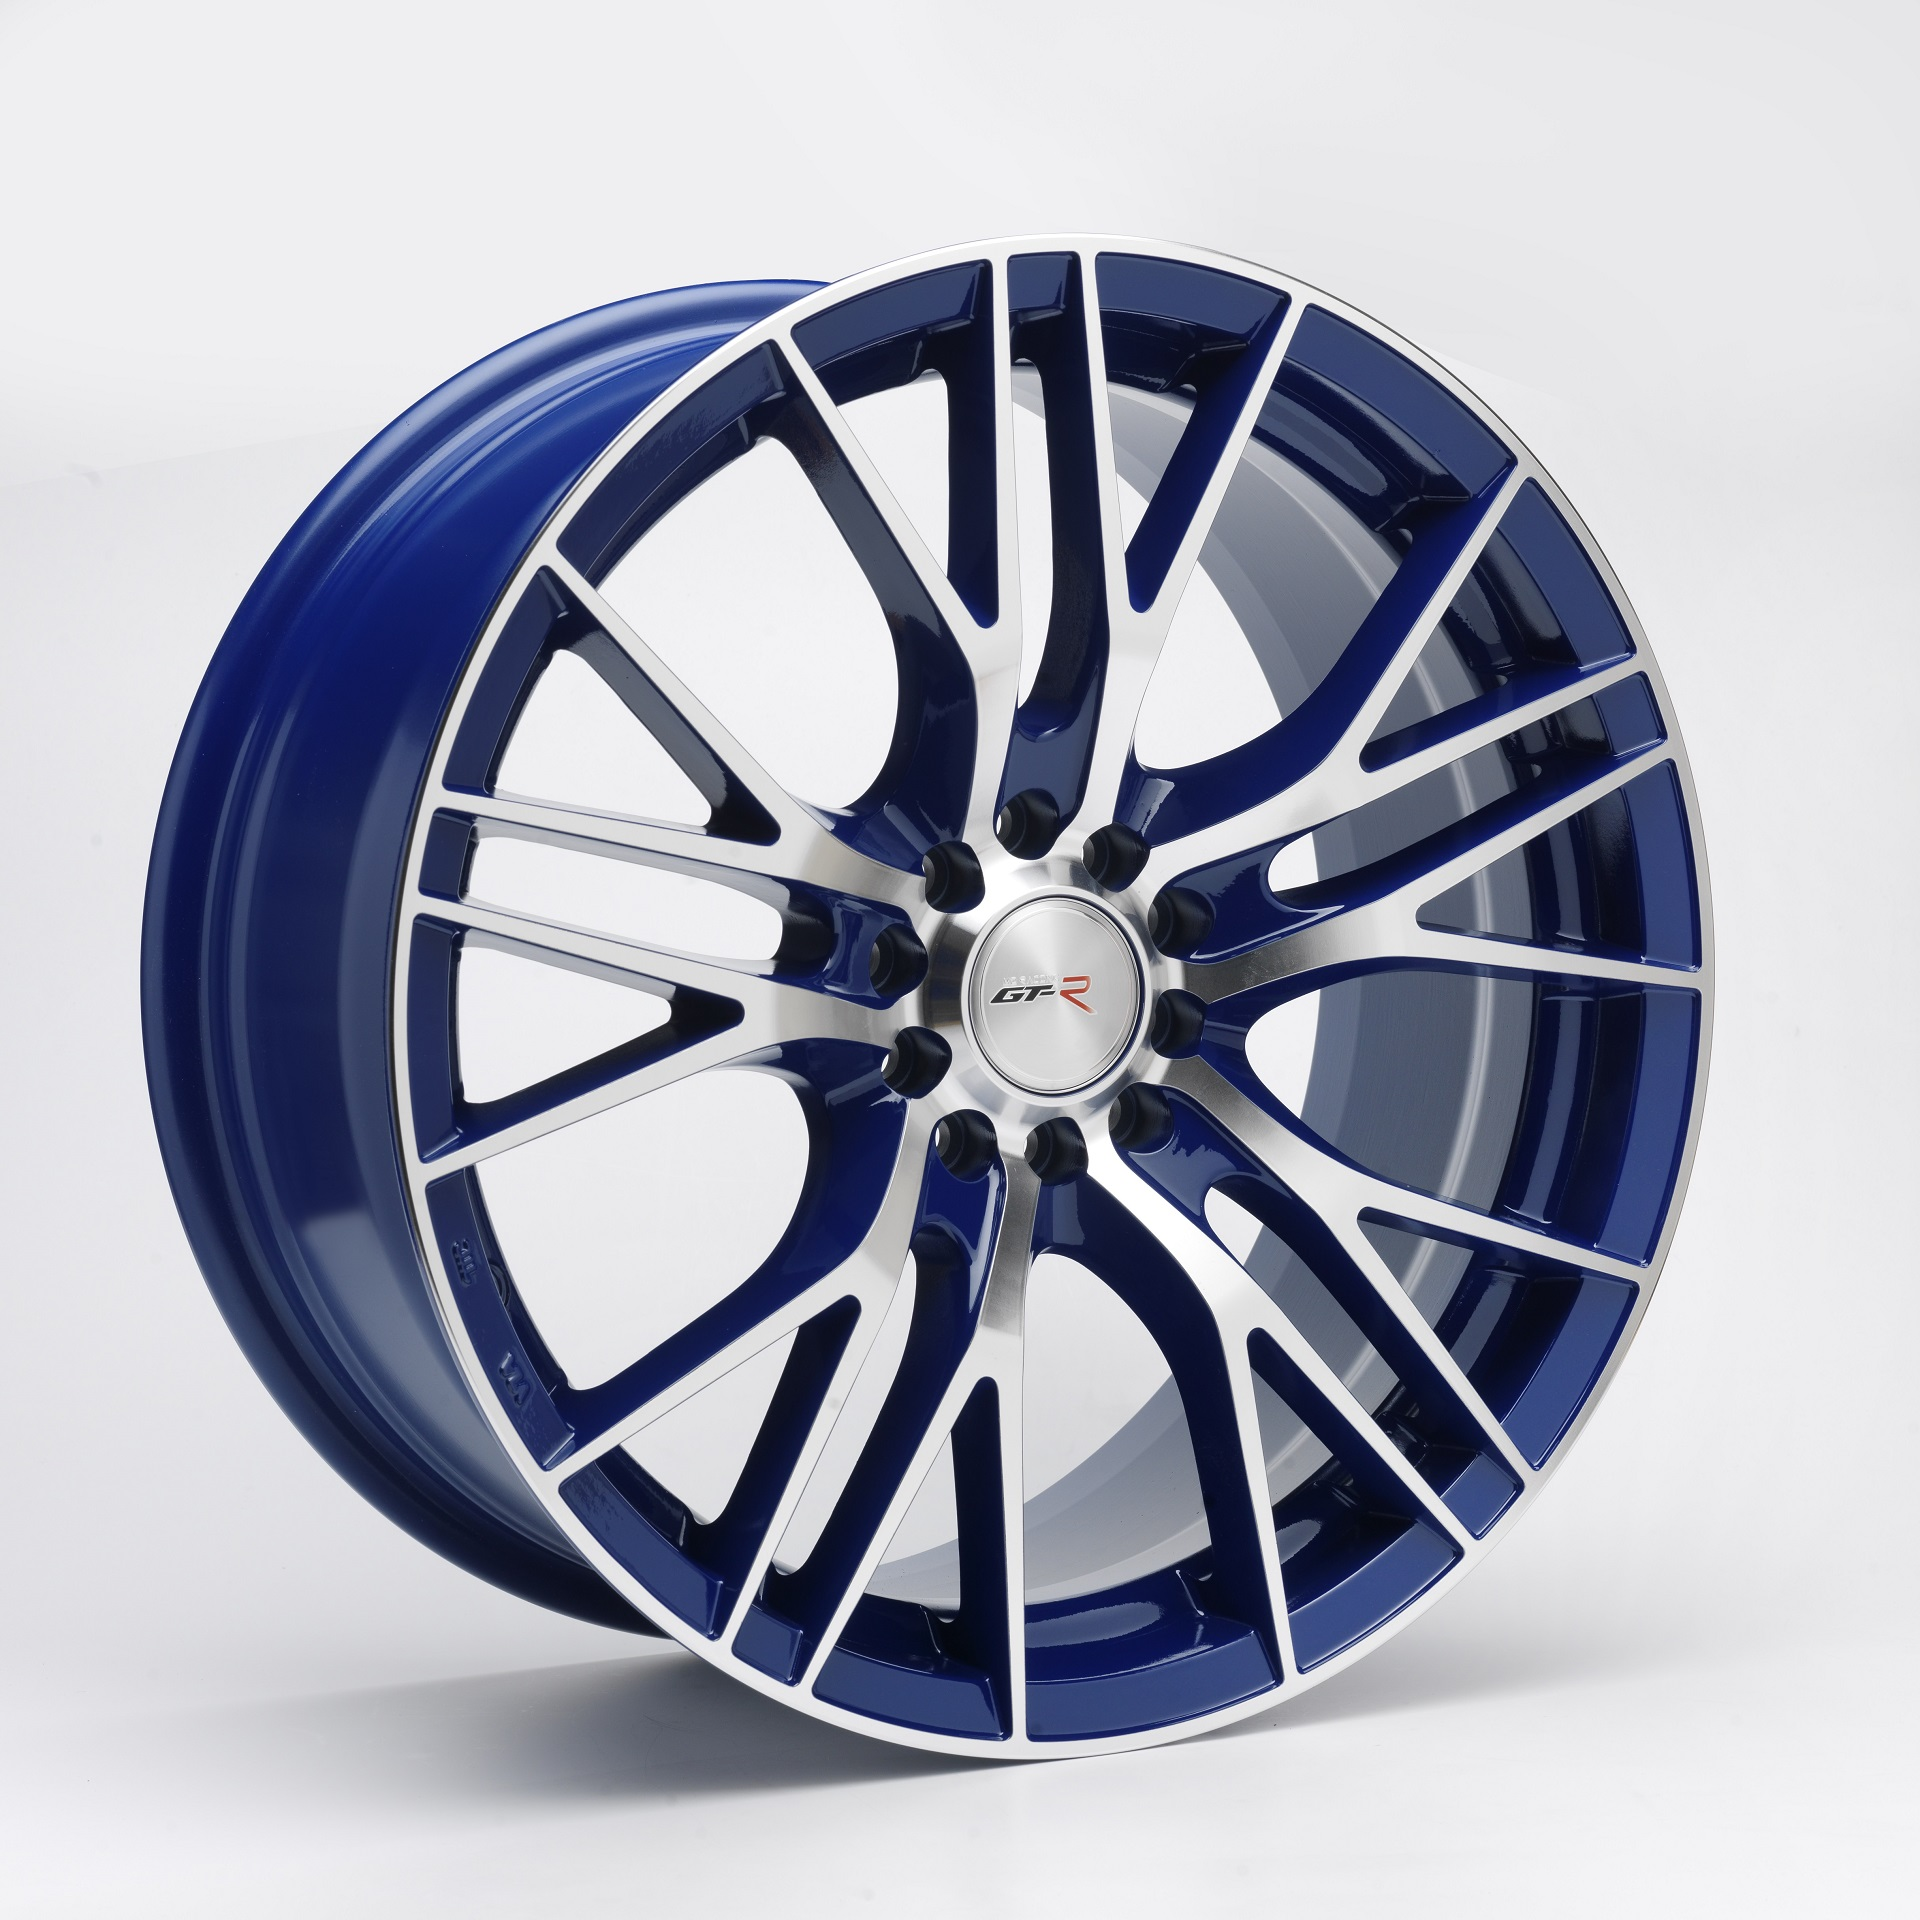 GT-R 5X114.3 6.5X15 ET38 73.1 TOP BLUE